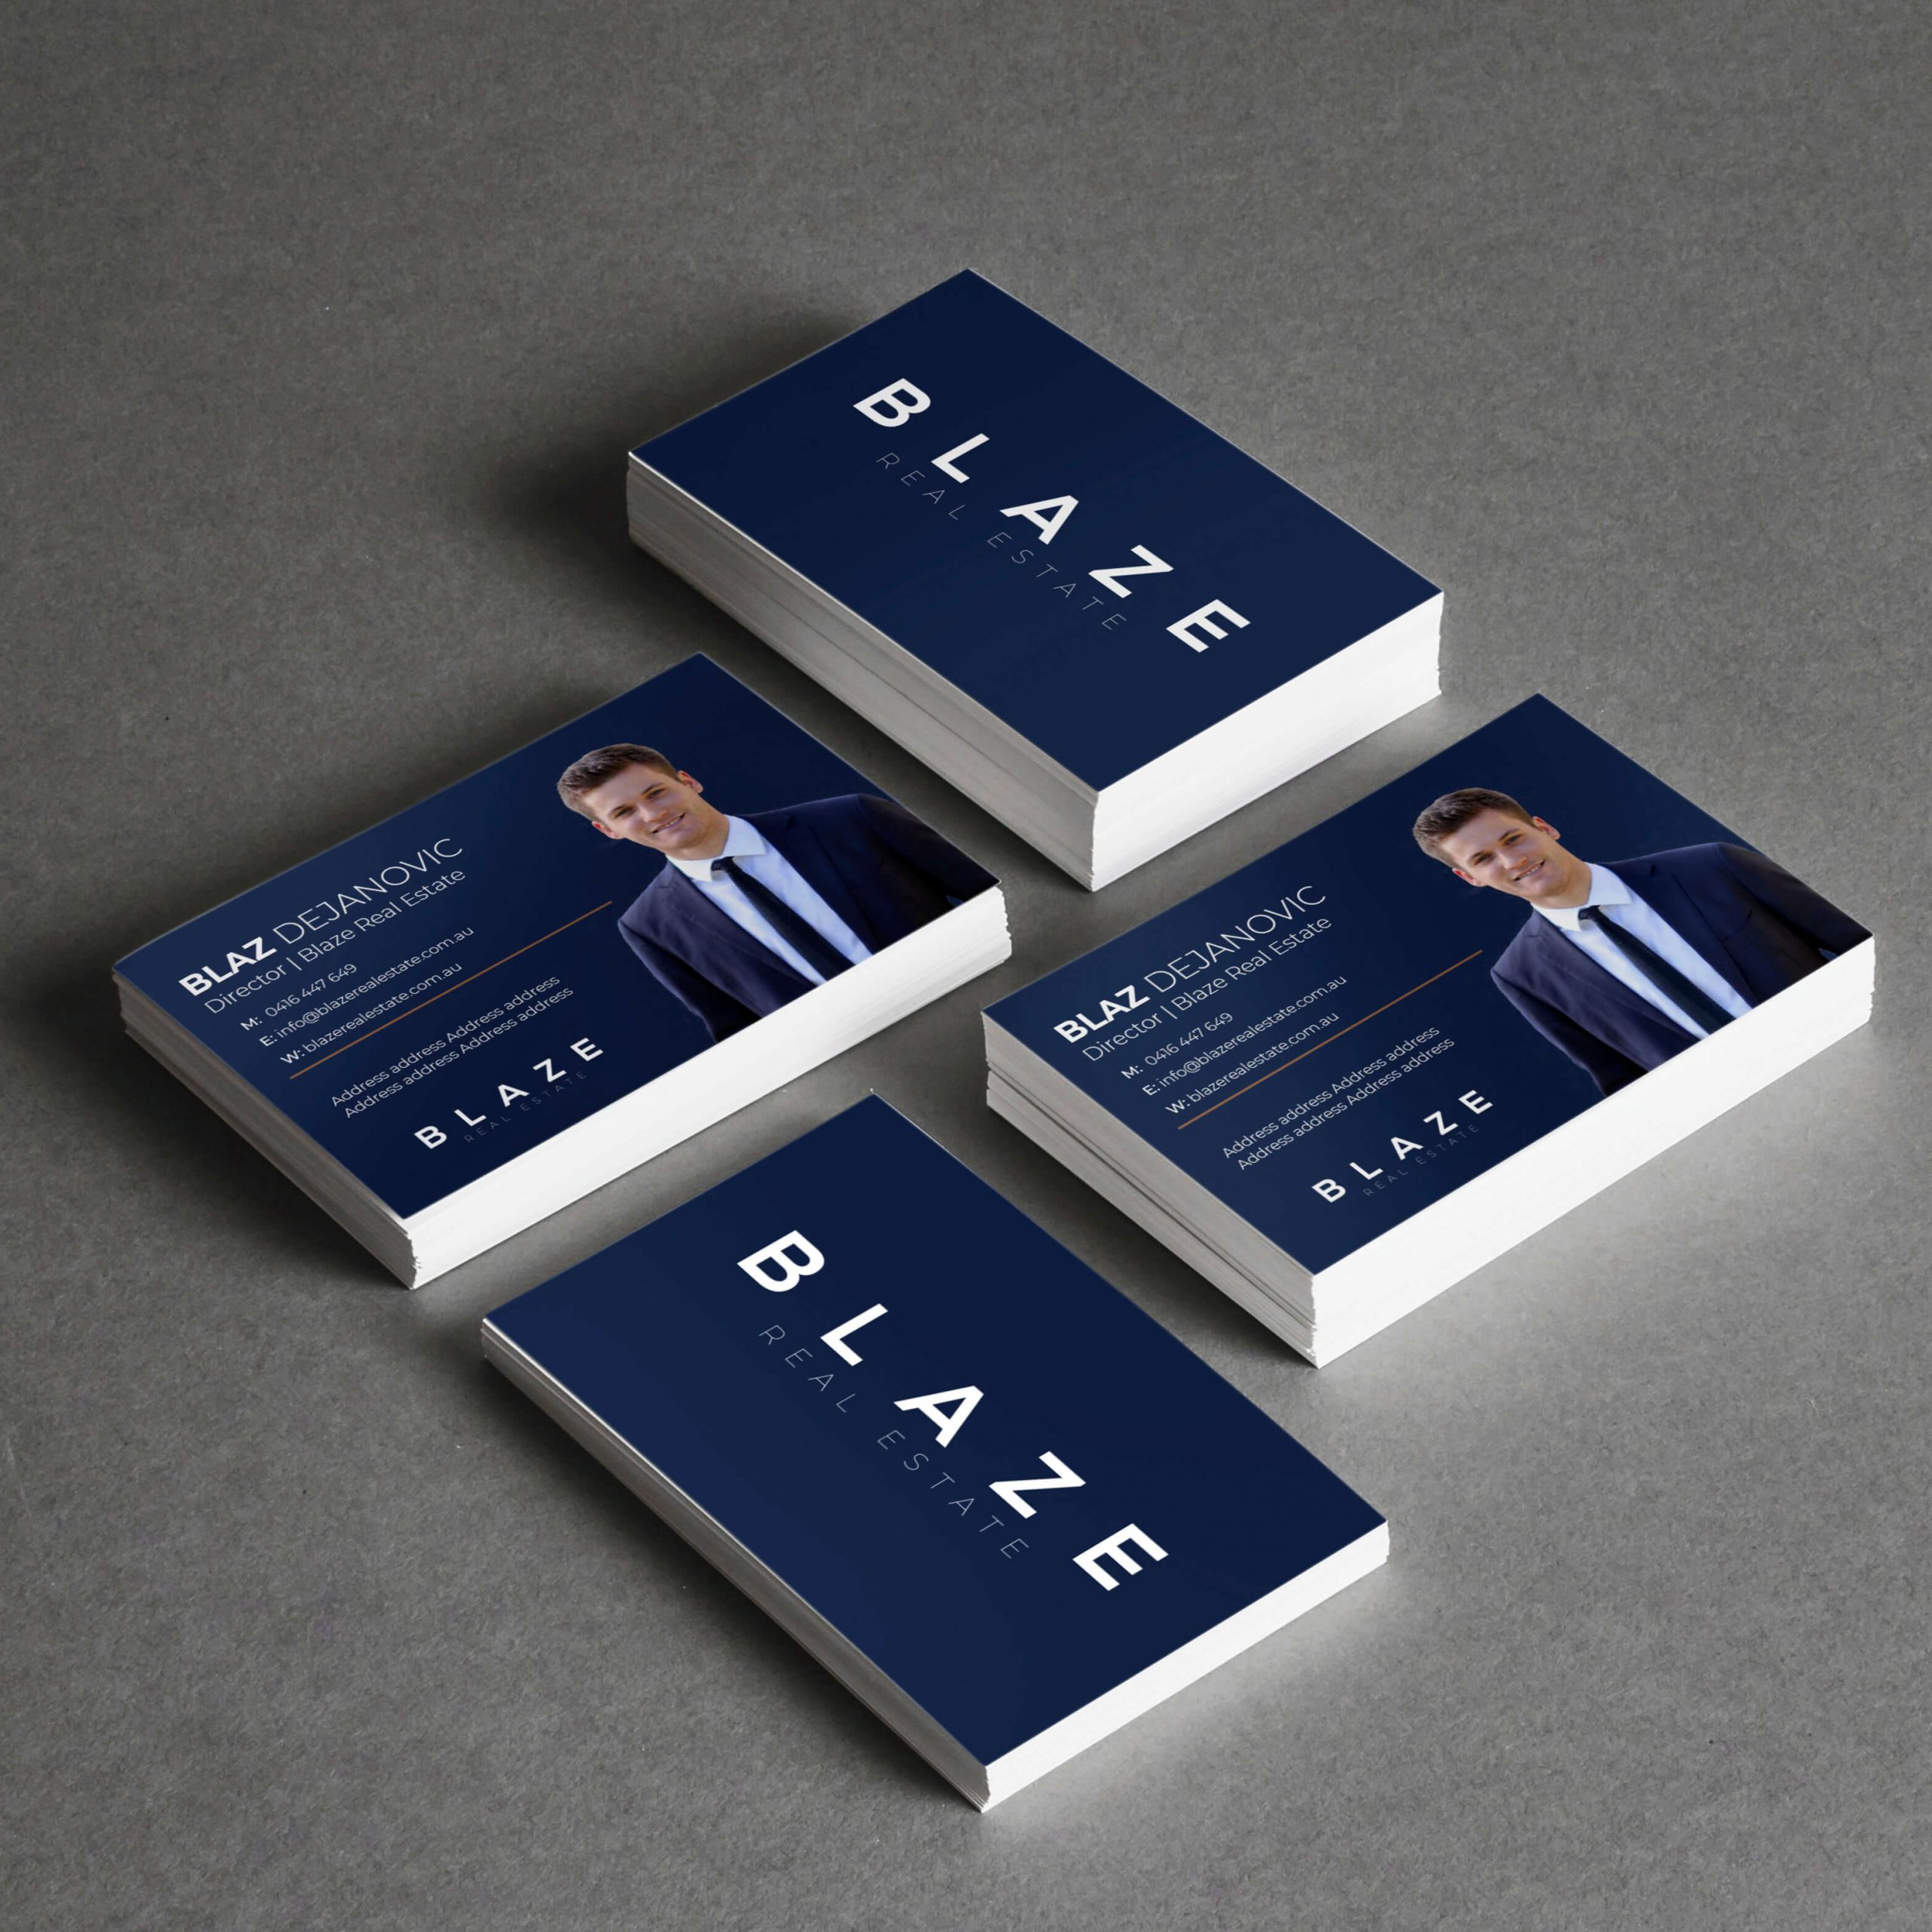 Business_Card_mock_up